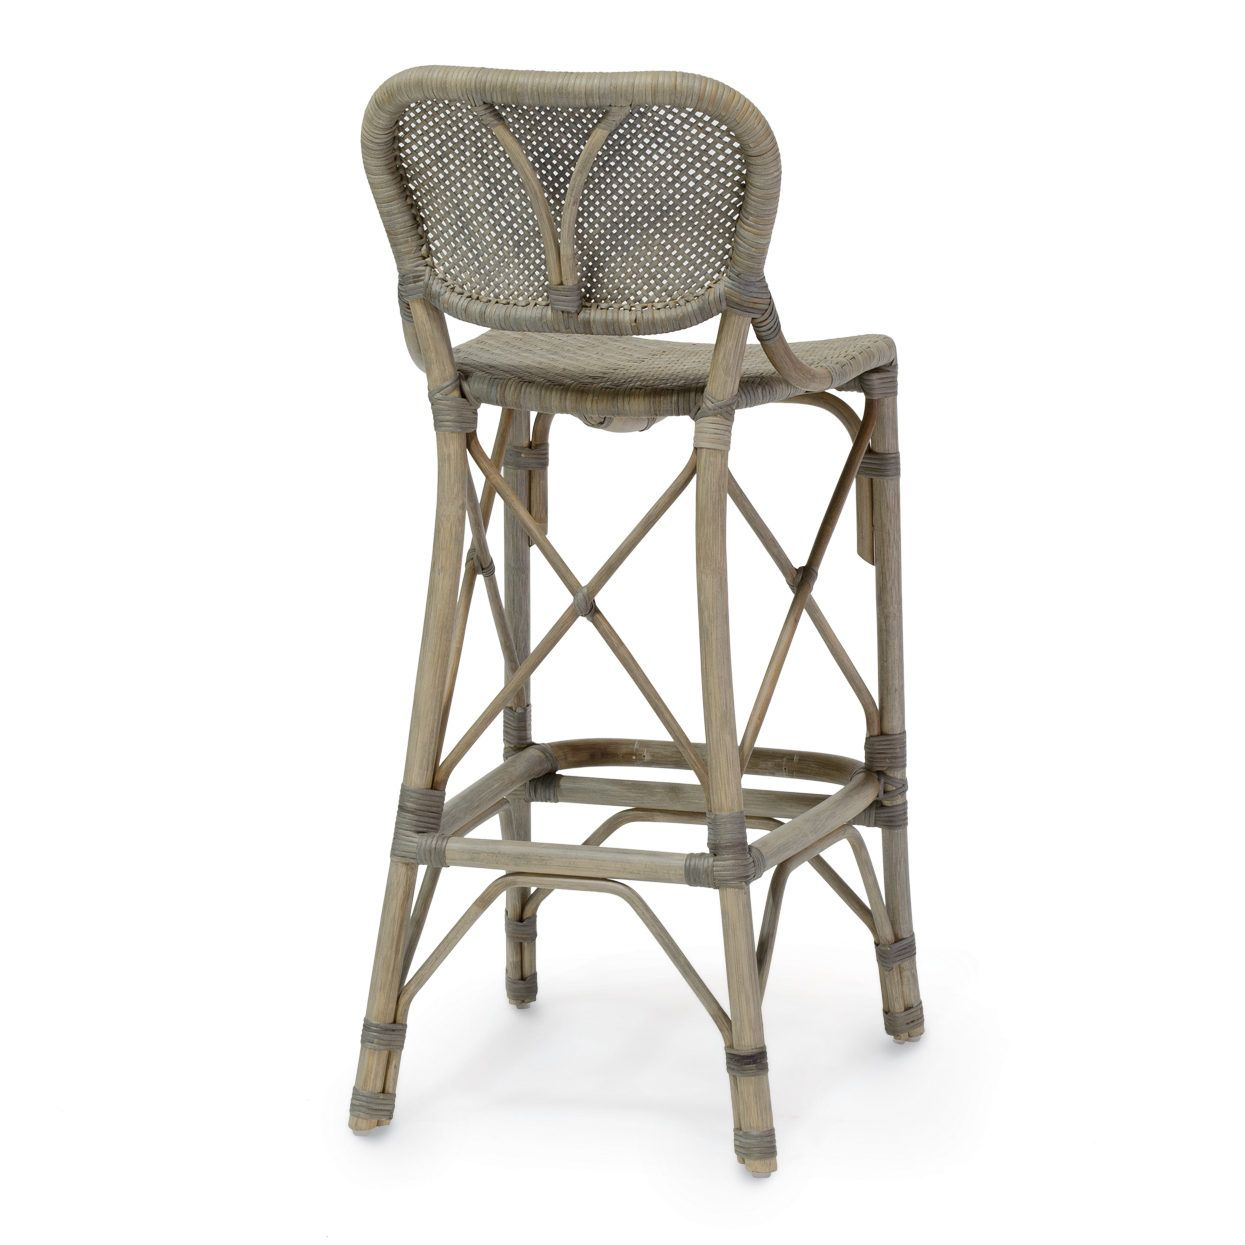 Luxury Wicker and Rattan Bar Stools